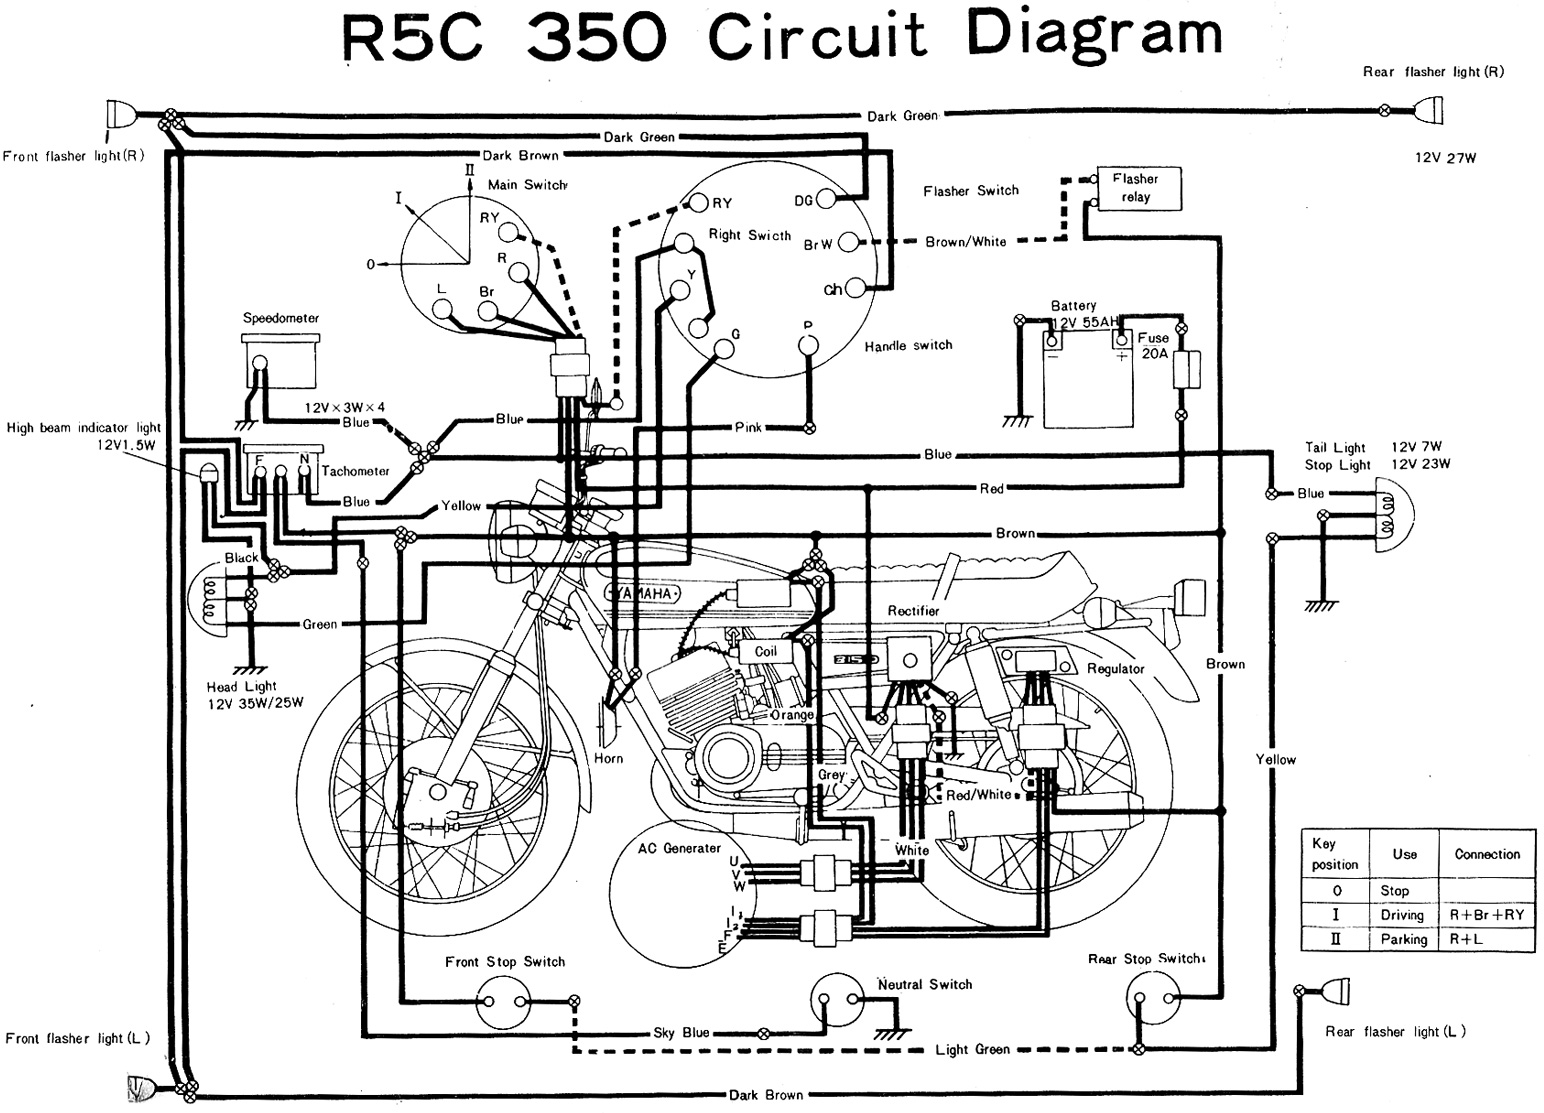 Motorcycle Wiring Diagrams Moped Diagram Simplified R5c 350